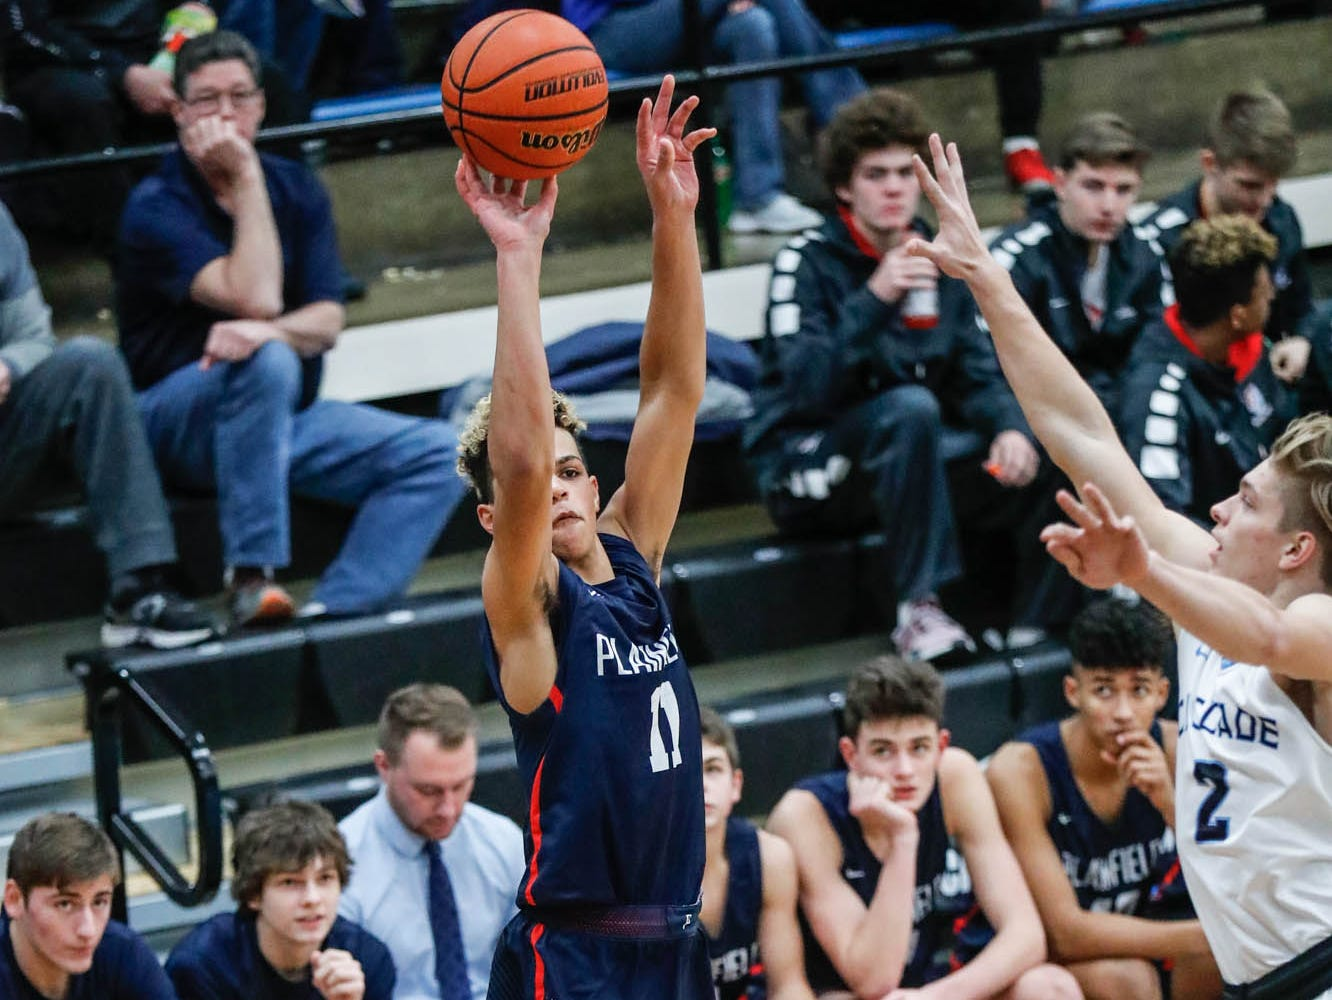 Plainfield High School's forward Cade Gibbs (11), shoots over Cascade High School's A.J. Sanders (2), during a 2019 Hendricks County Basketball Tournament game between Plainfield High School and Cascade High School, held at Cascade on Wednesday, Jan. 2, 2019.